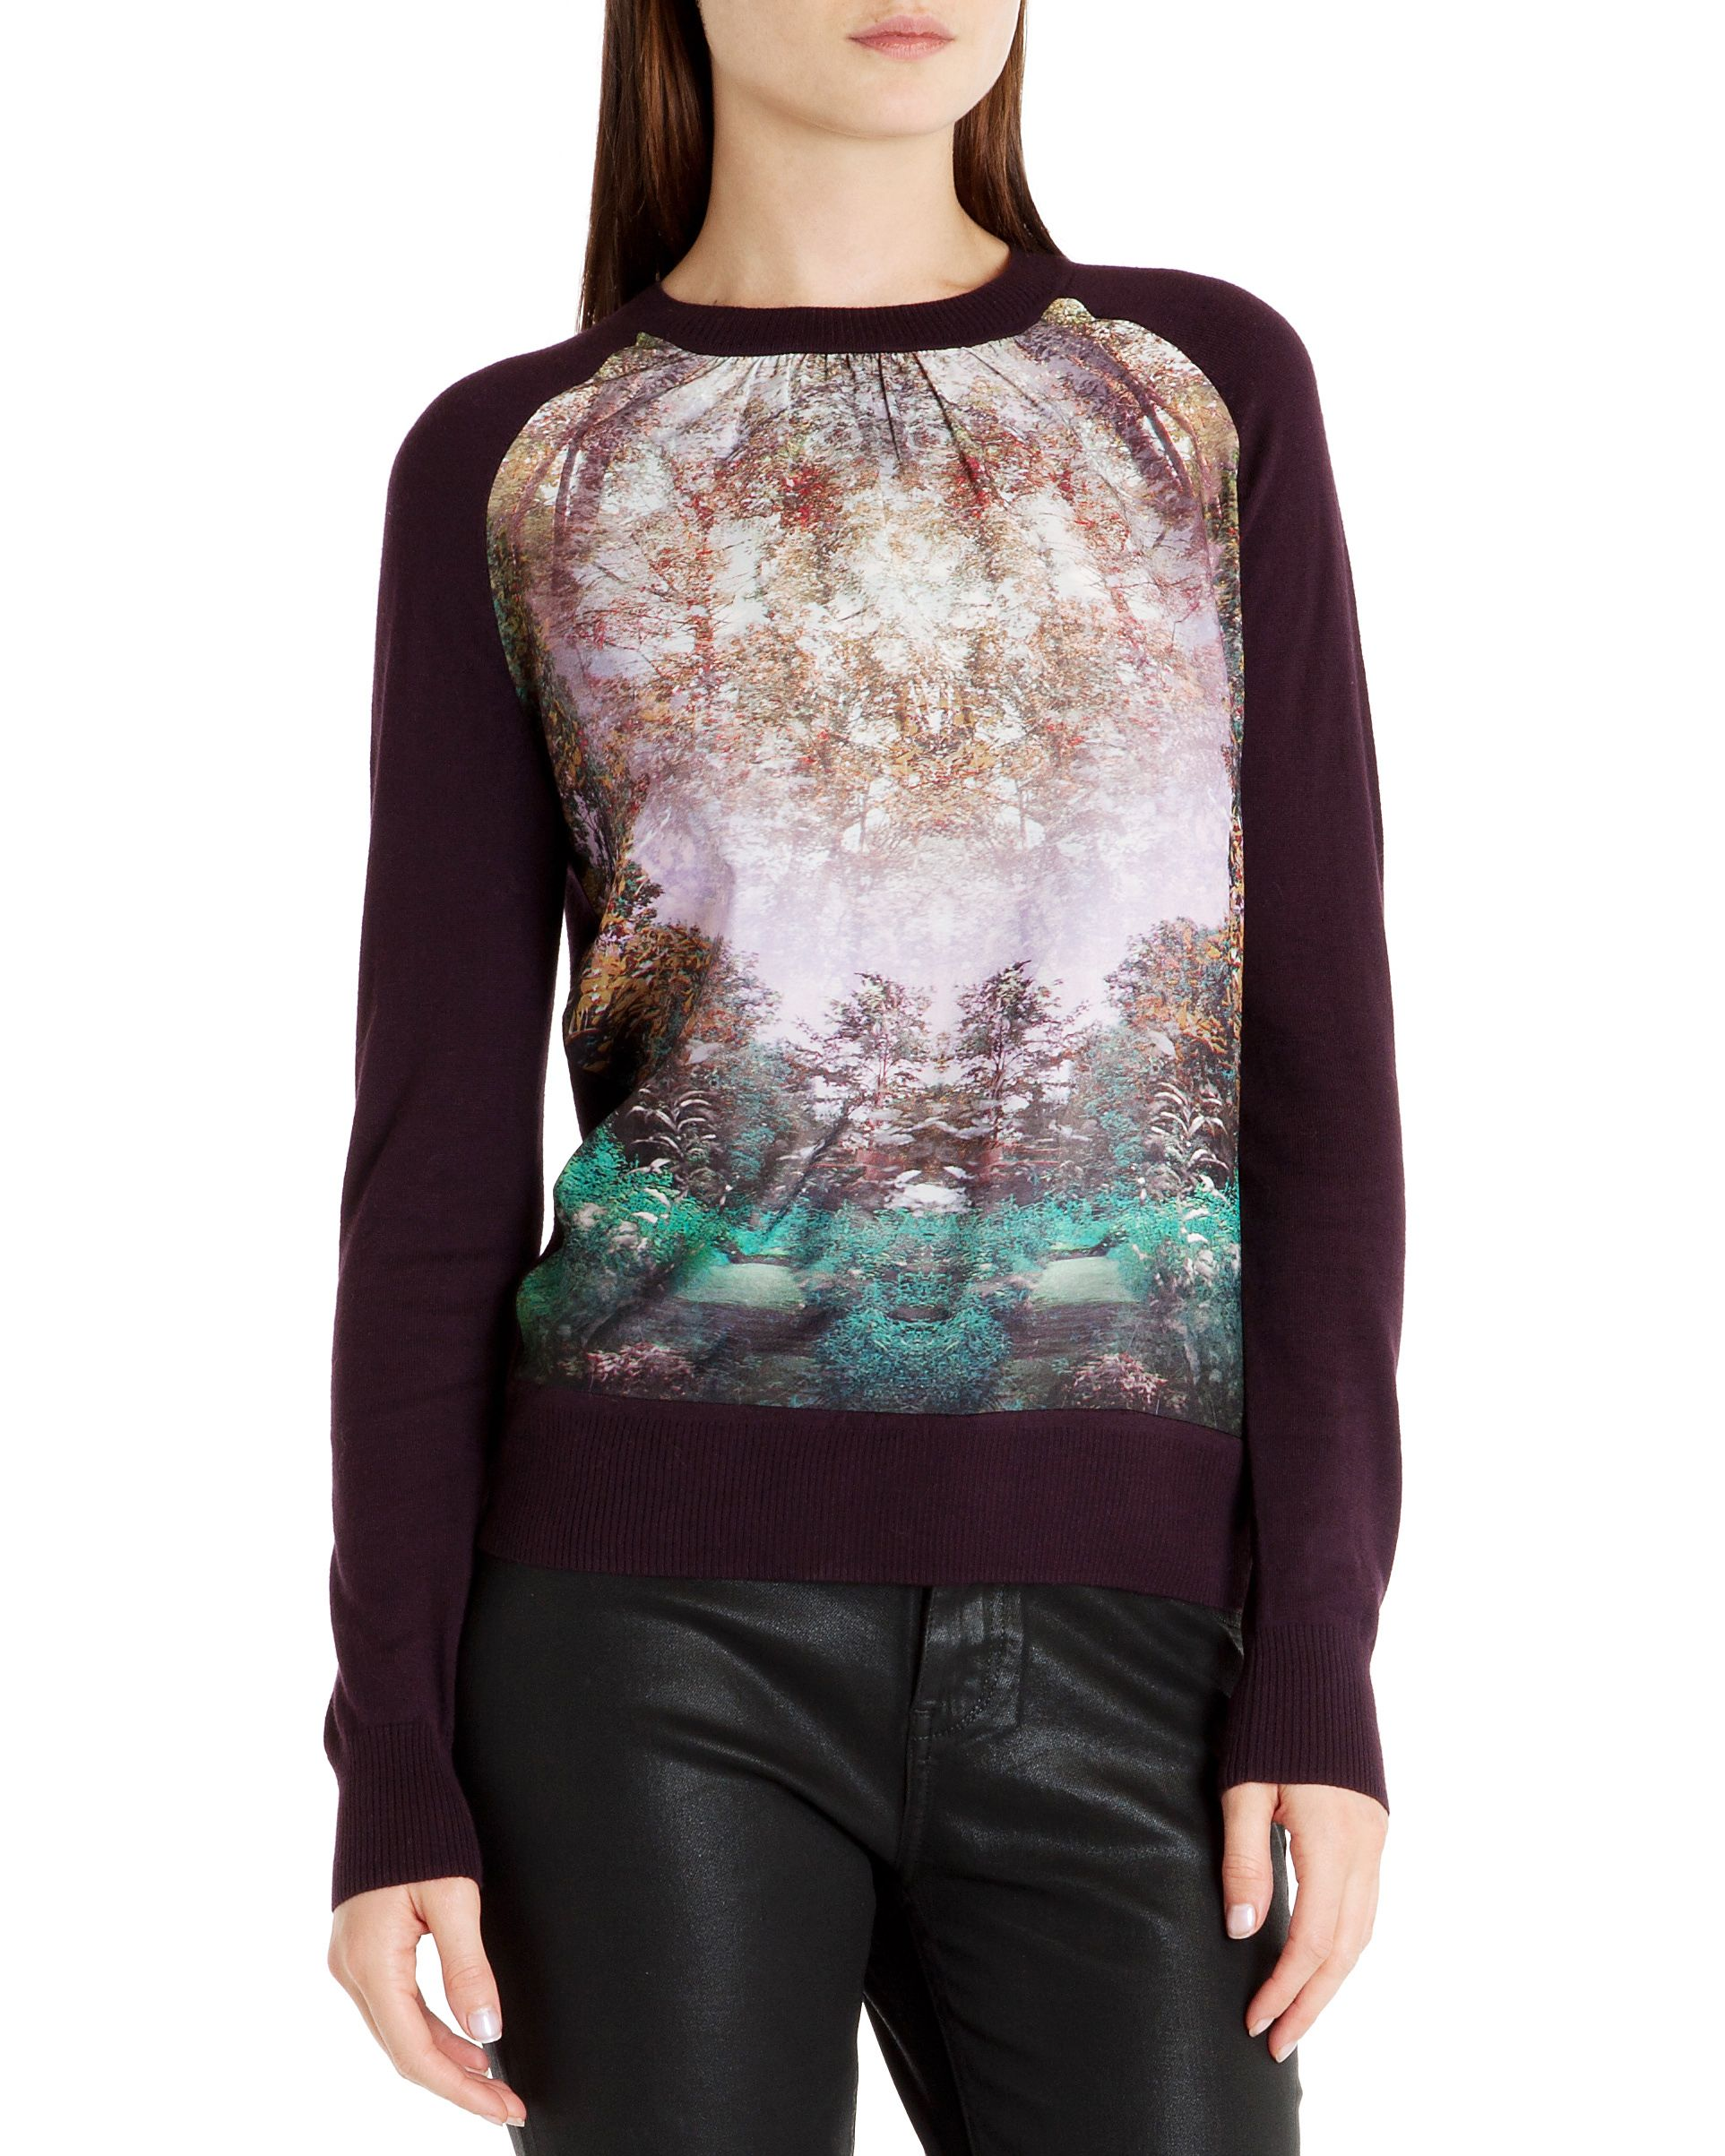 Rayna Magical mist print sweater